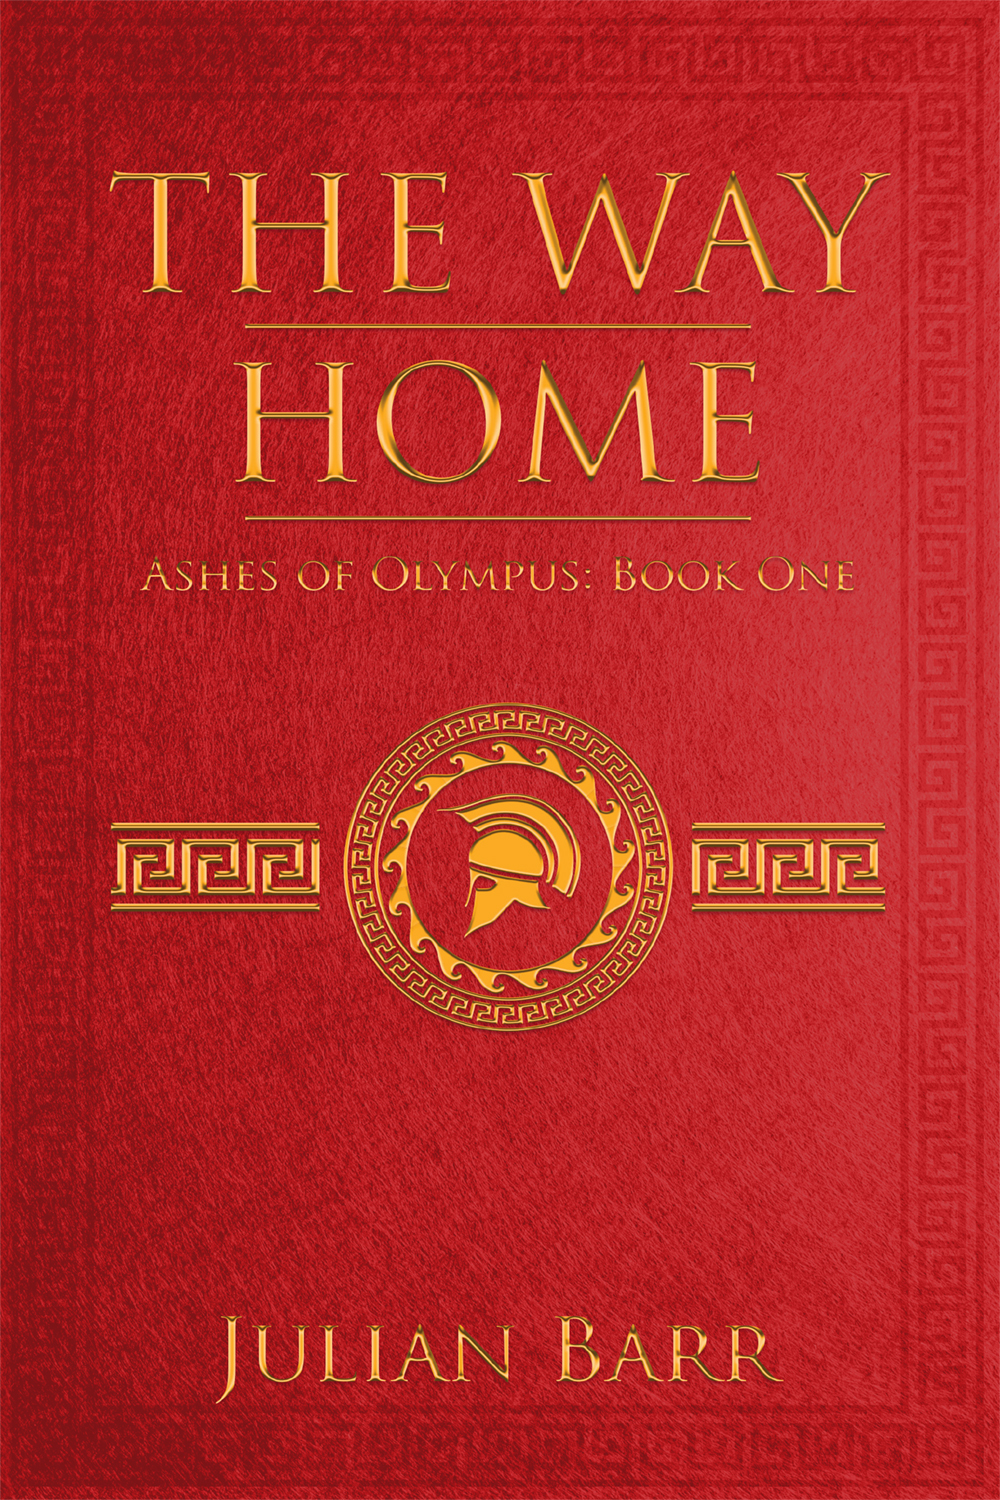 The Way Home, cover image